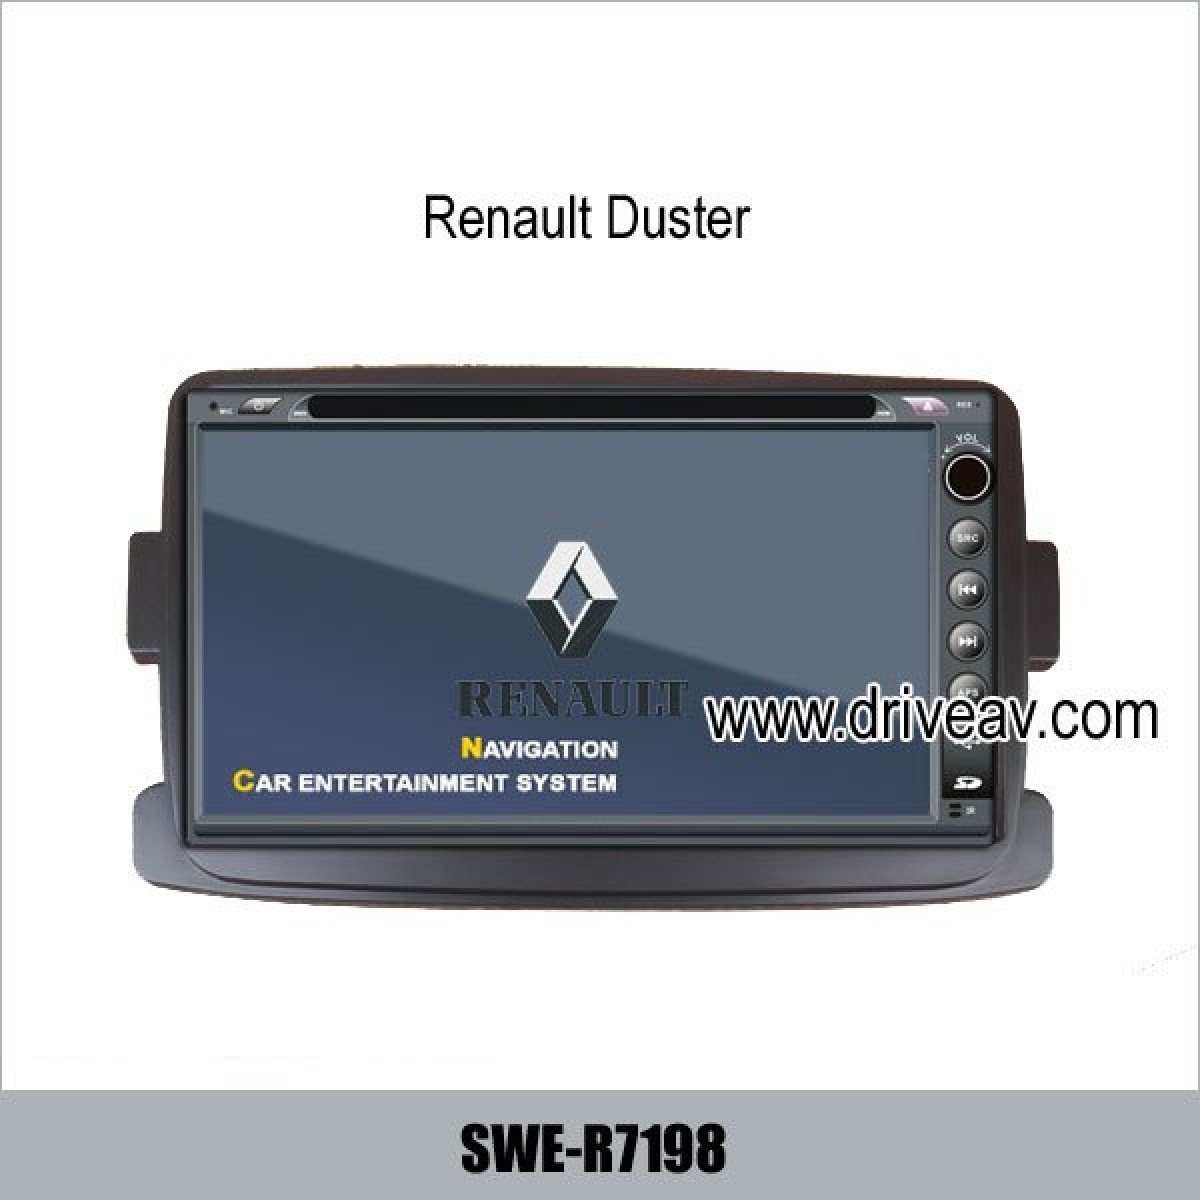 renault duster stereo radio car dvd player gps navigation tv bluetooth. Black Bedroom Furniture Sets. Home Design Ideas